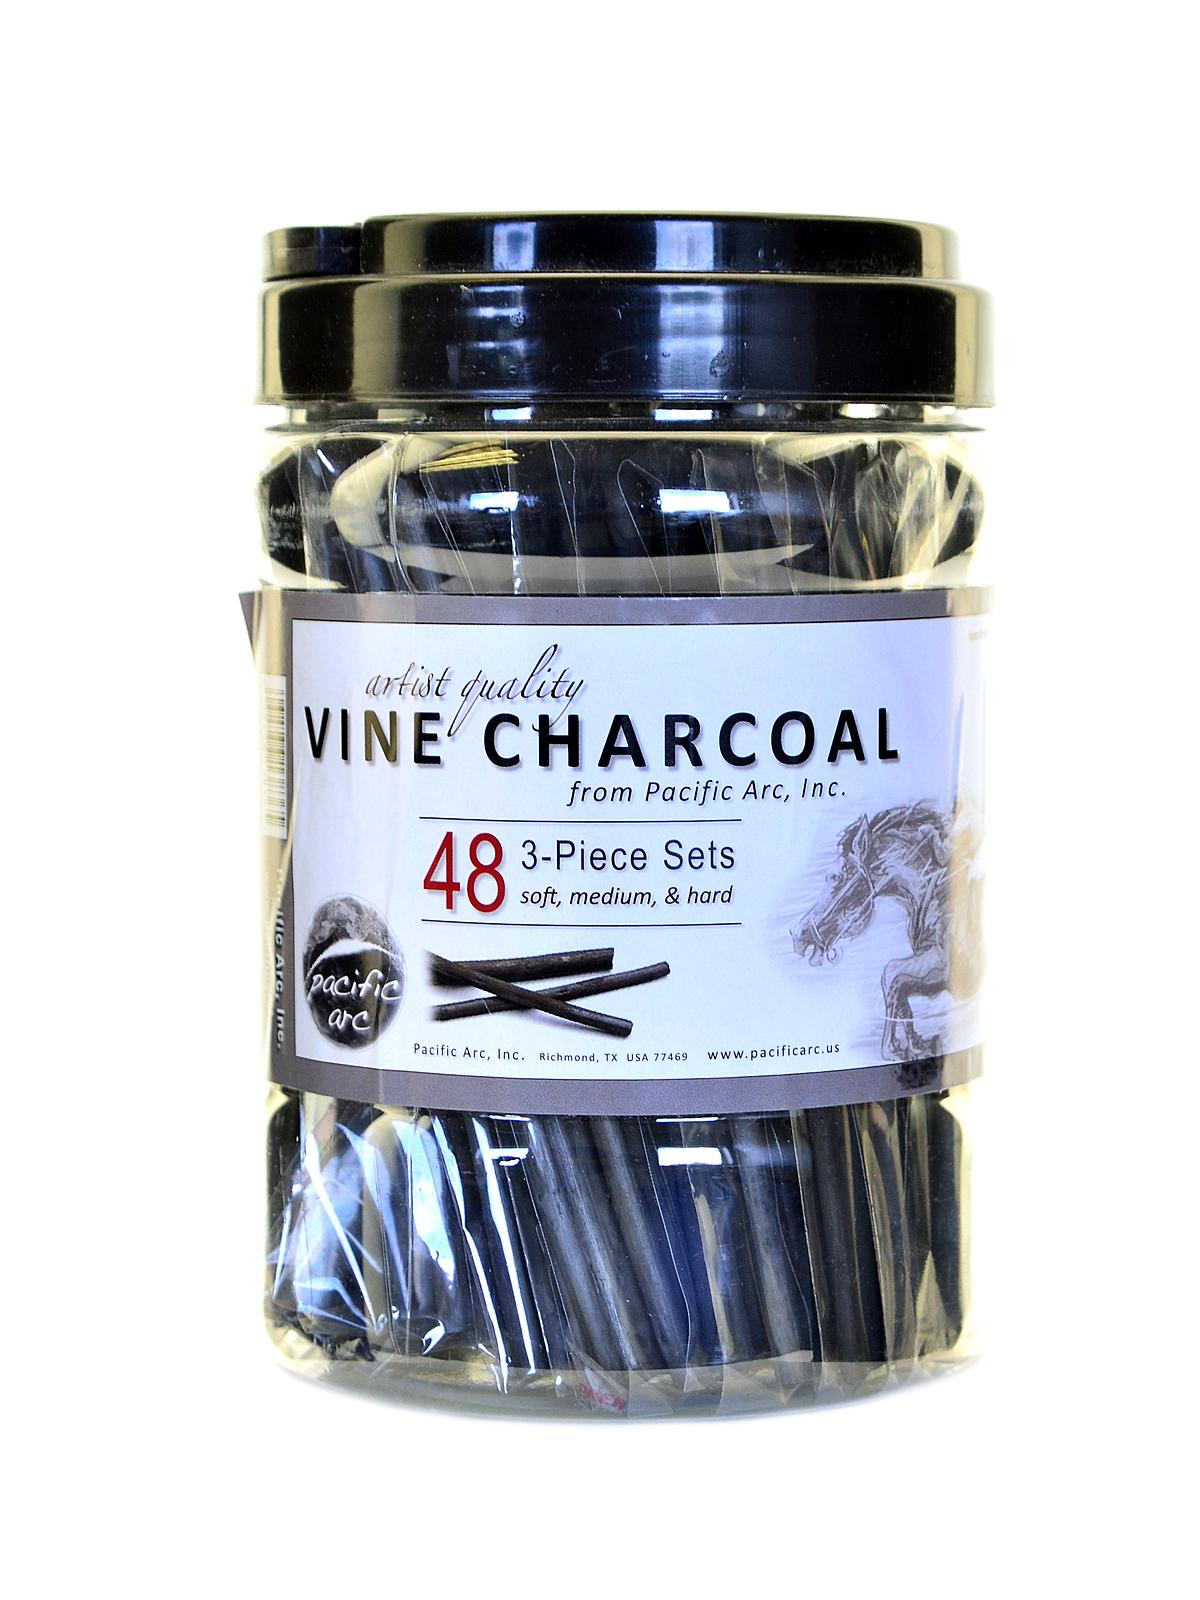 Vine Charcoal 3-Piece Sets